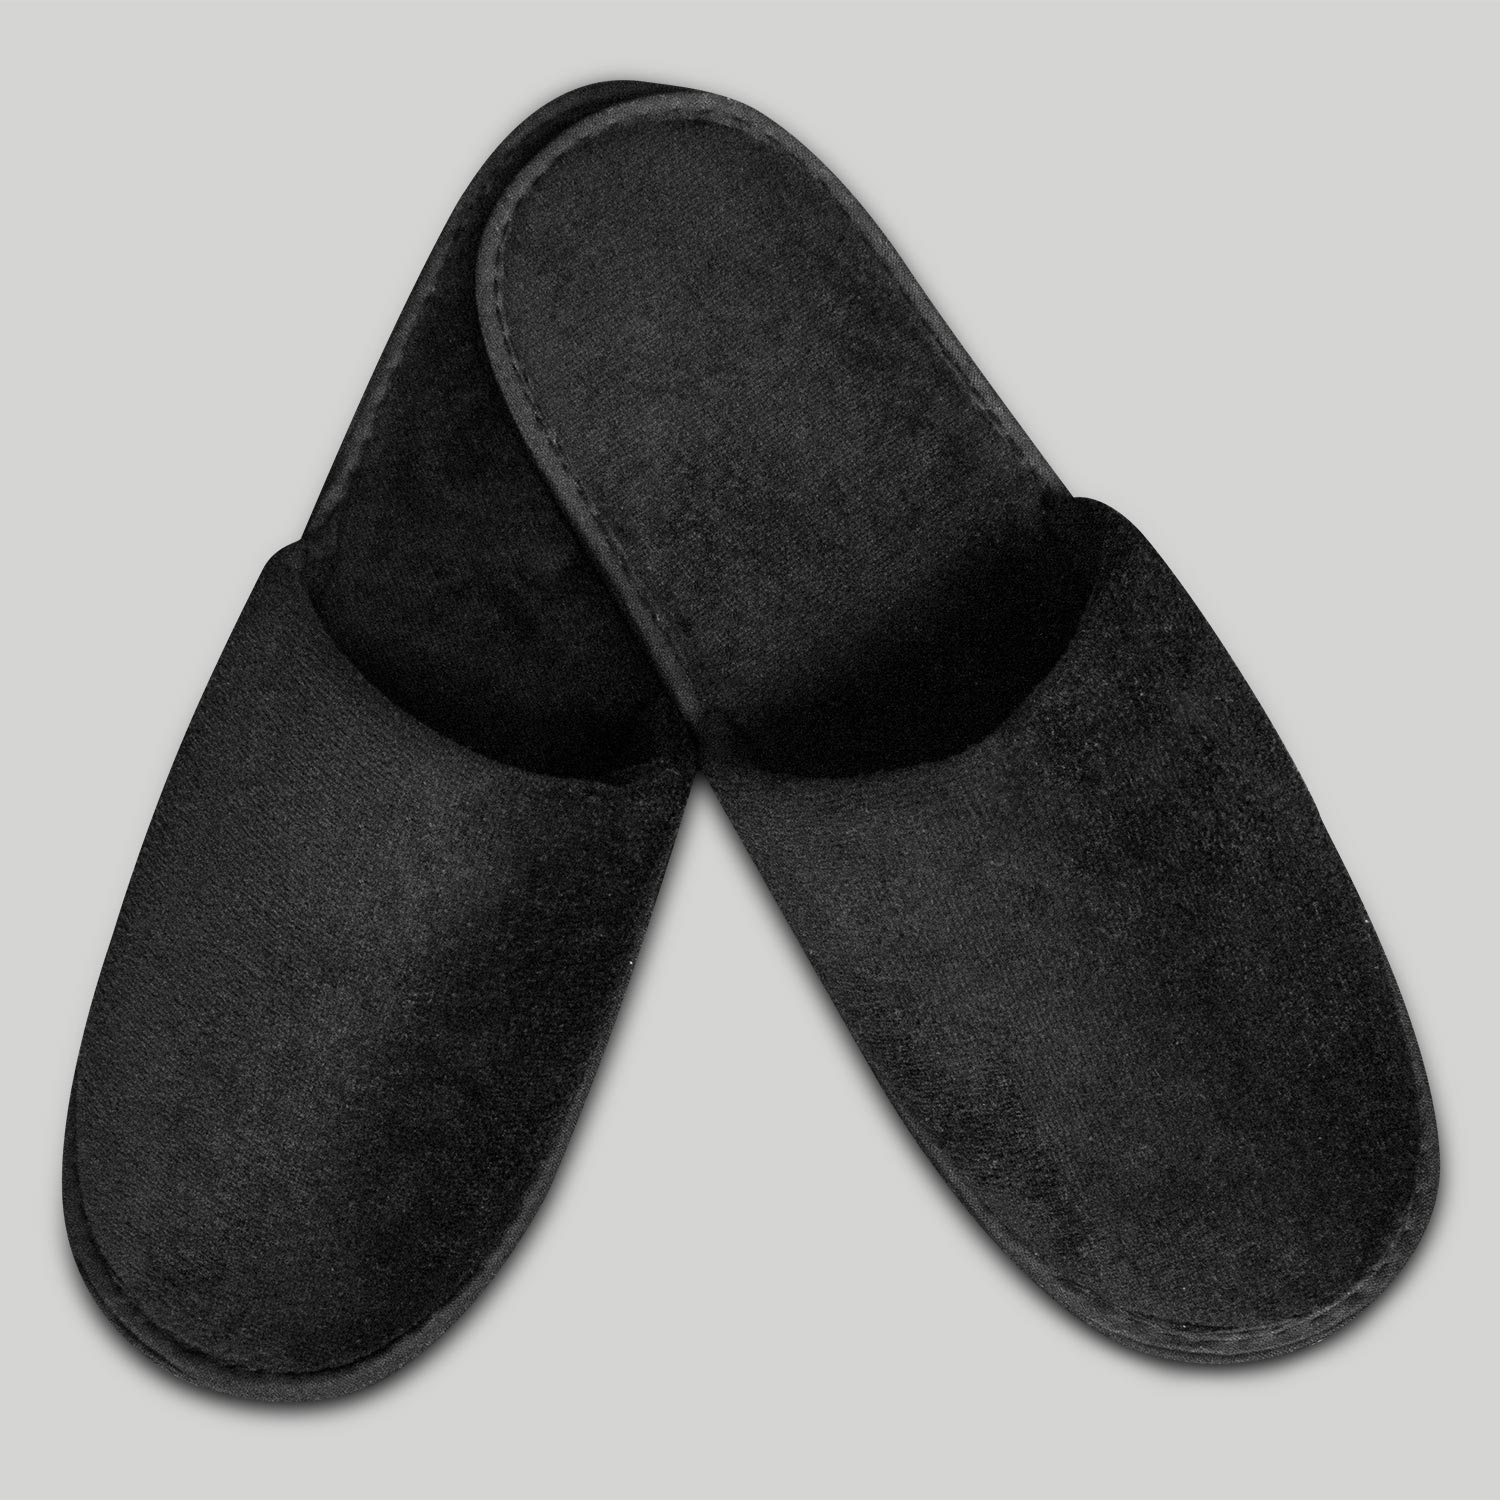 Slippers Black Closed Toe Adult Velour Slippers